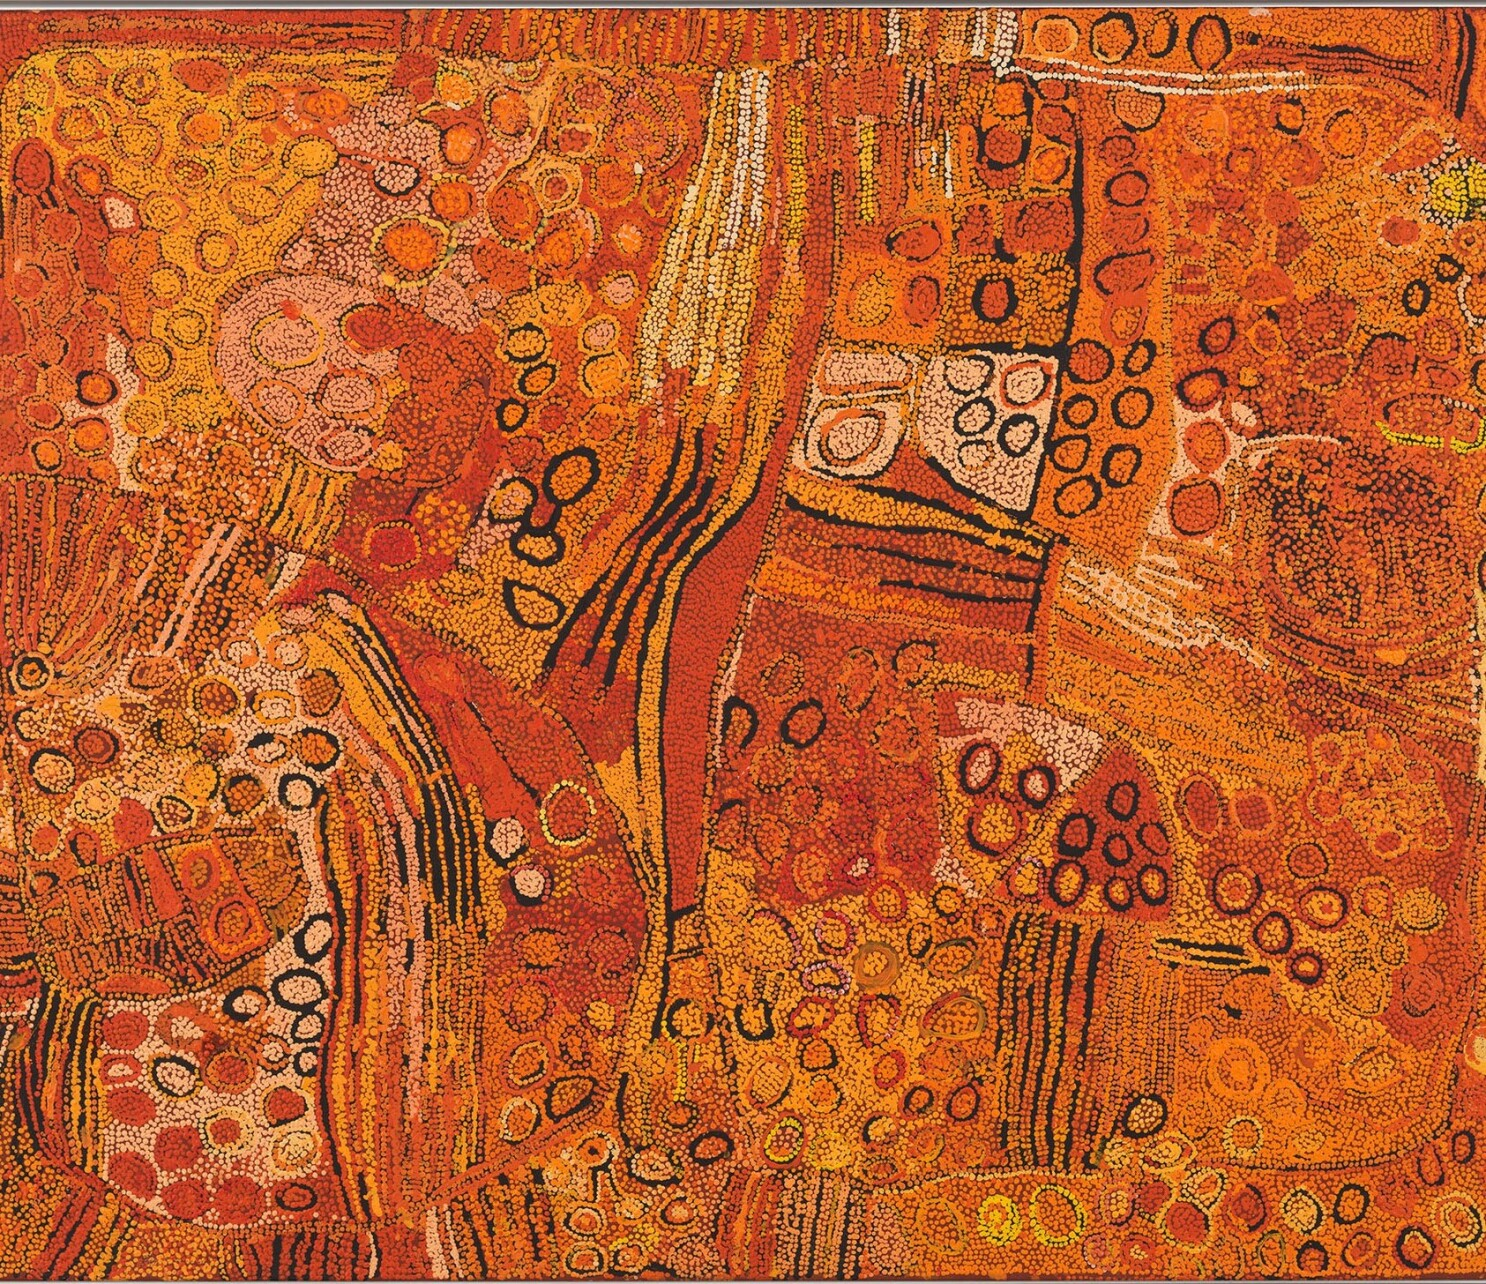 Gagosian's 'Desert Painters of Australia' bursts with beauty